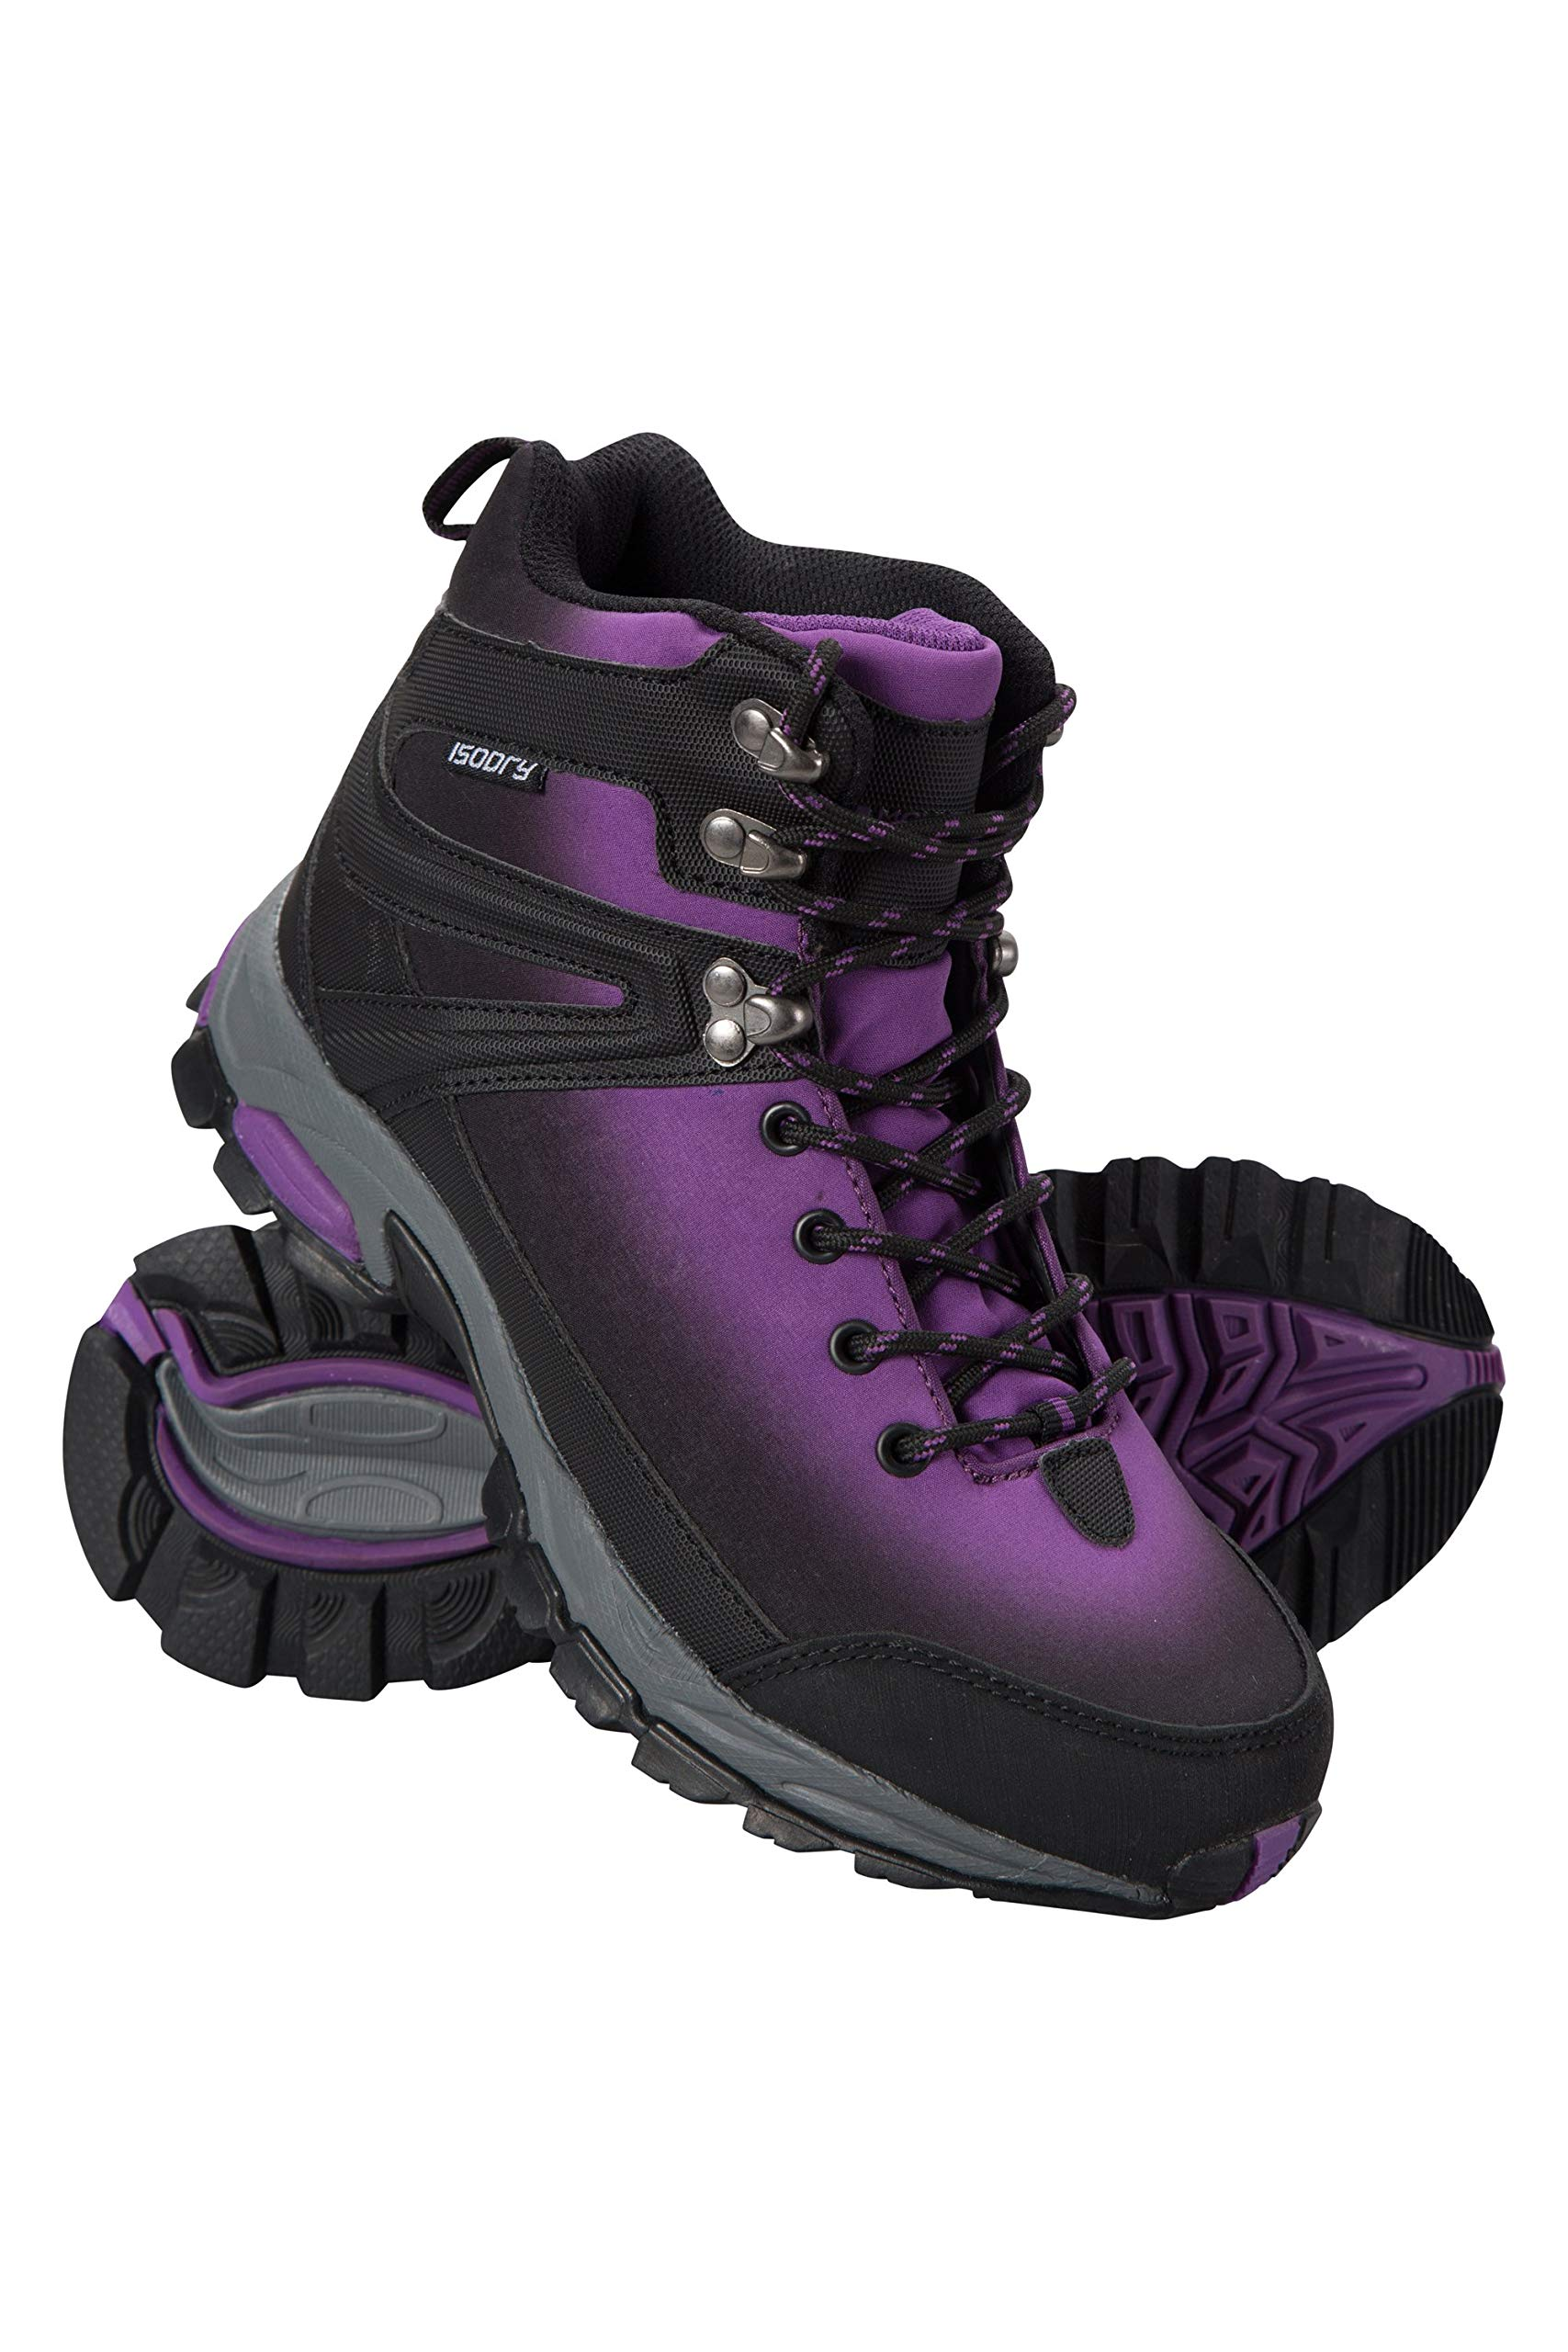 Mountain Warehouse Intrepid Womens Softshell Boots - Waterproof Shoes Purple Womens Shoe Size 7 US by Mountain Warehouse